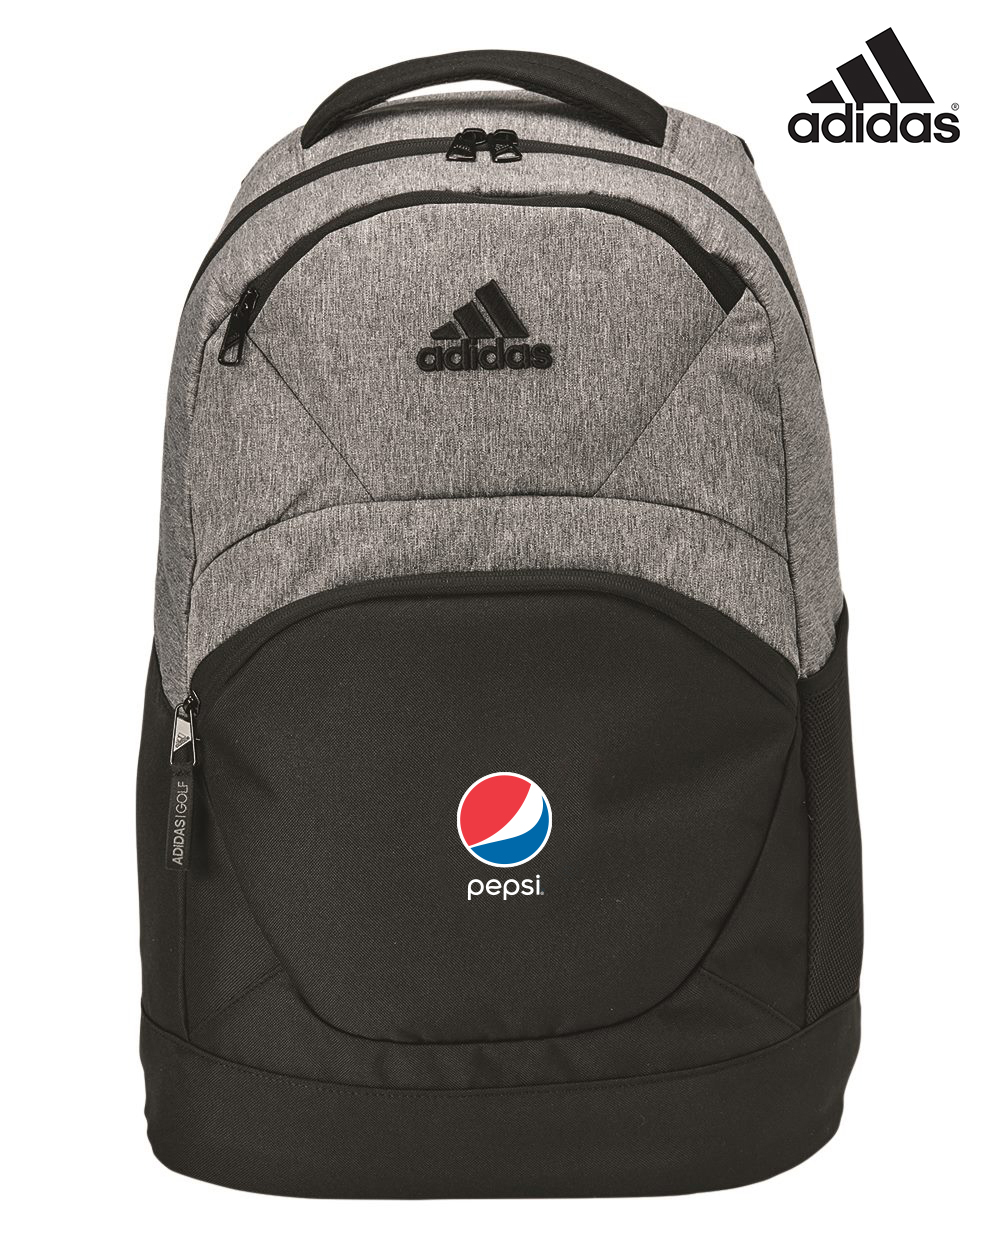 Adidas - 32L Medium Backpack - Pepsi